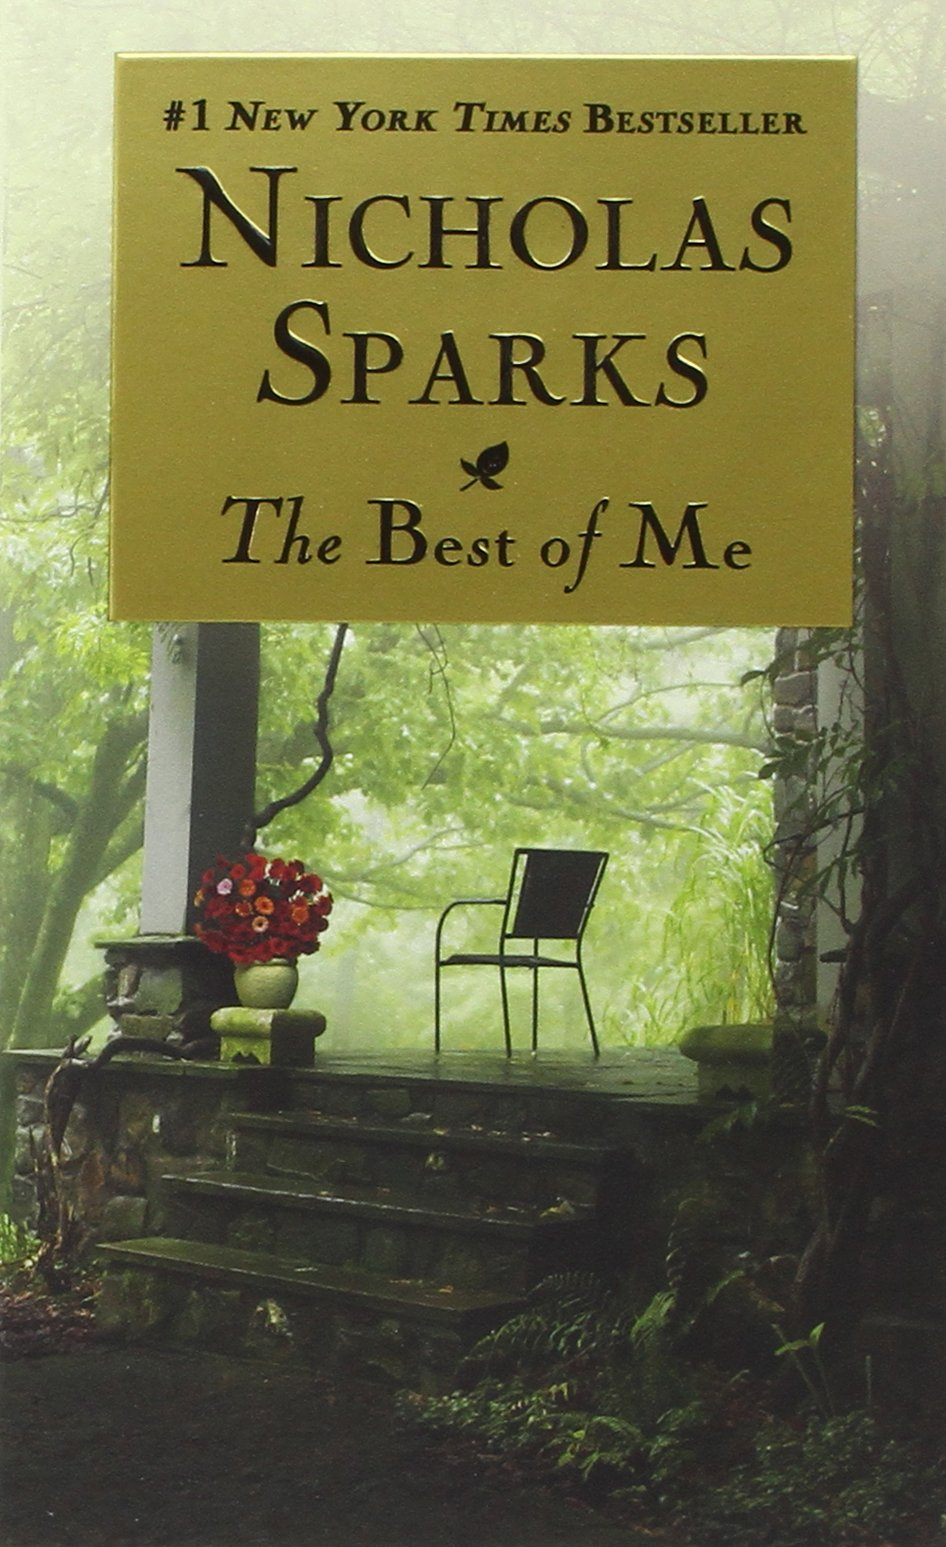 THE BEST OF ME NICHOLAS SPARKS PDF DOWNLOAD